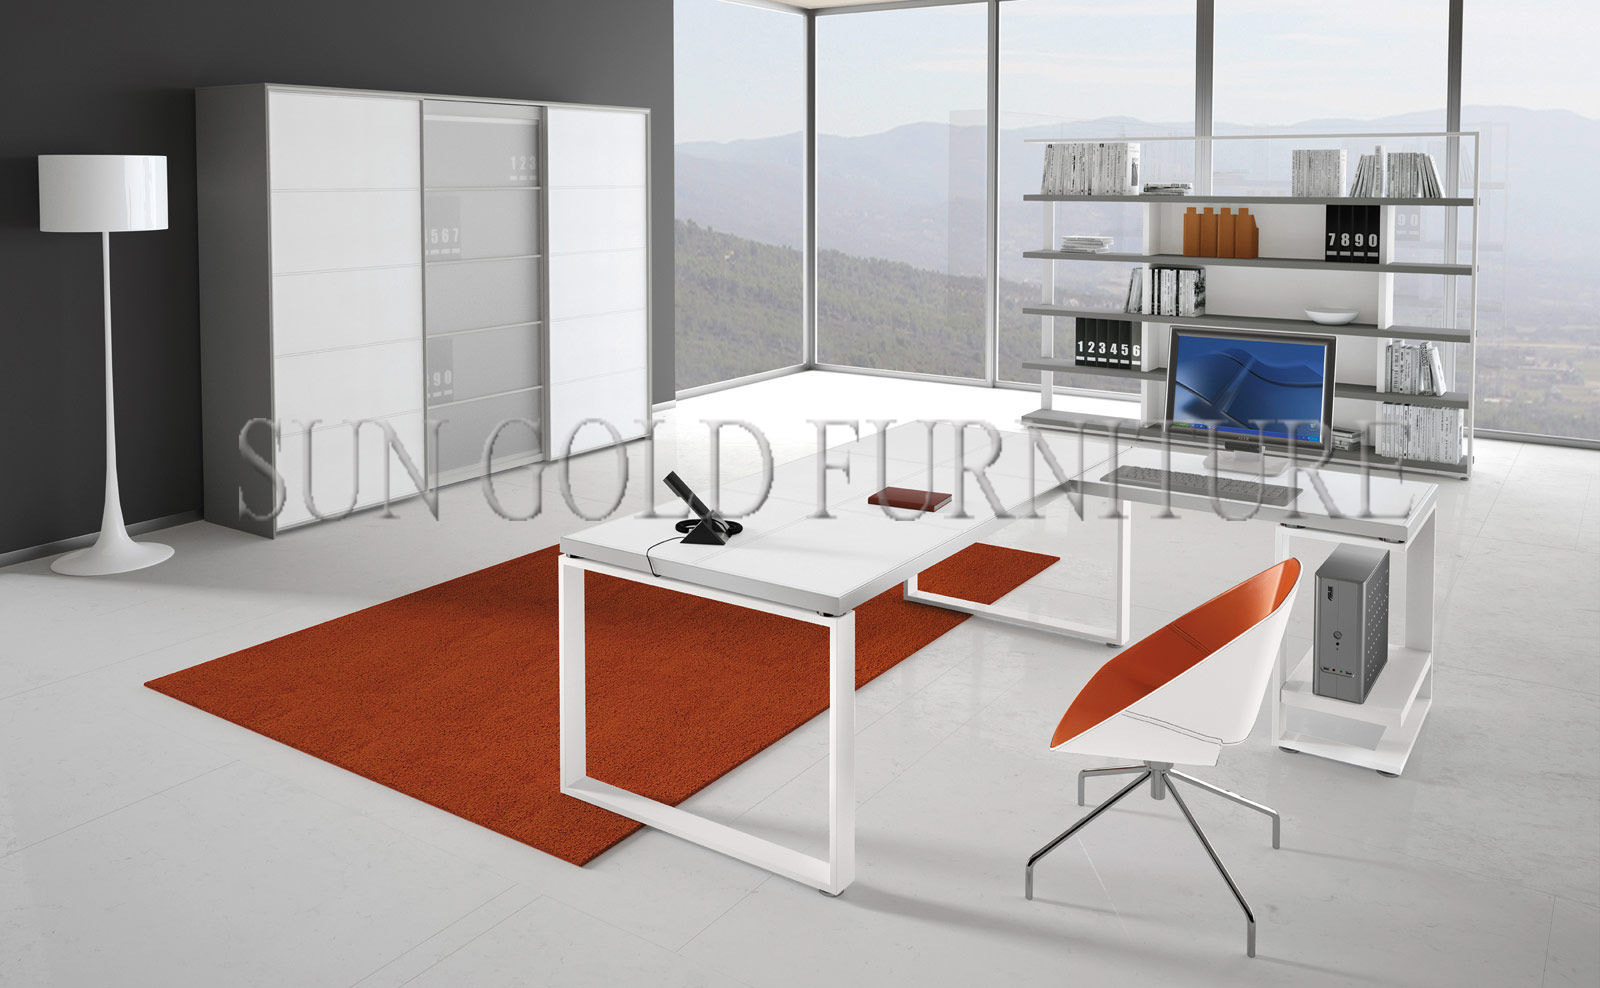 Computer table models with prices - Others Office Desk Executive Desk Foshan Sun Gold Furniture Co Ltd Page 1